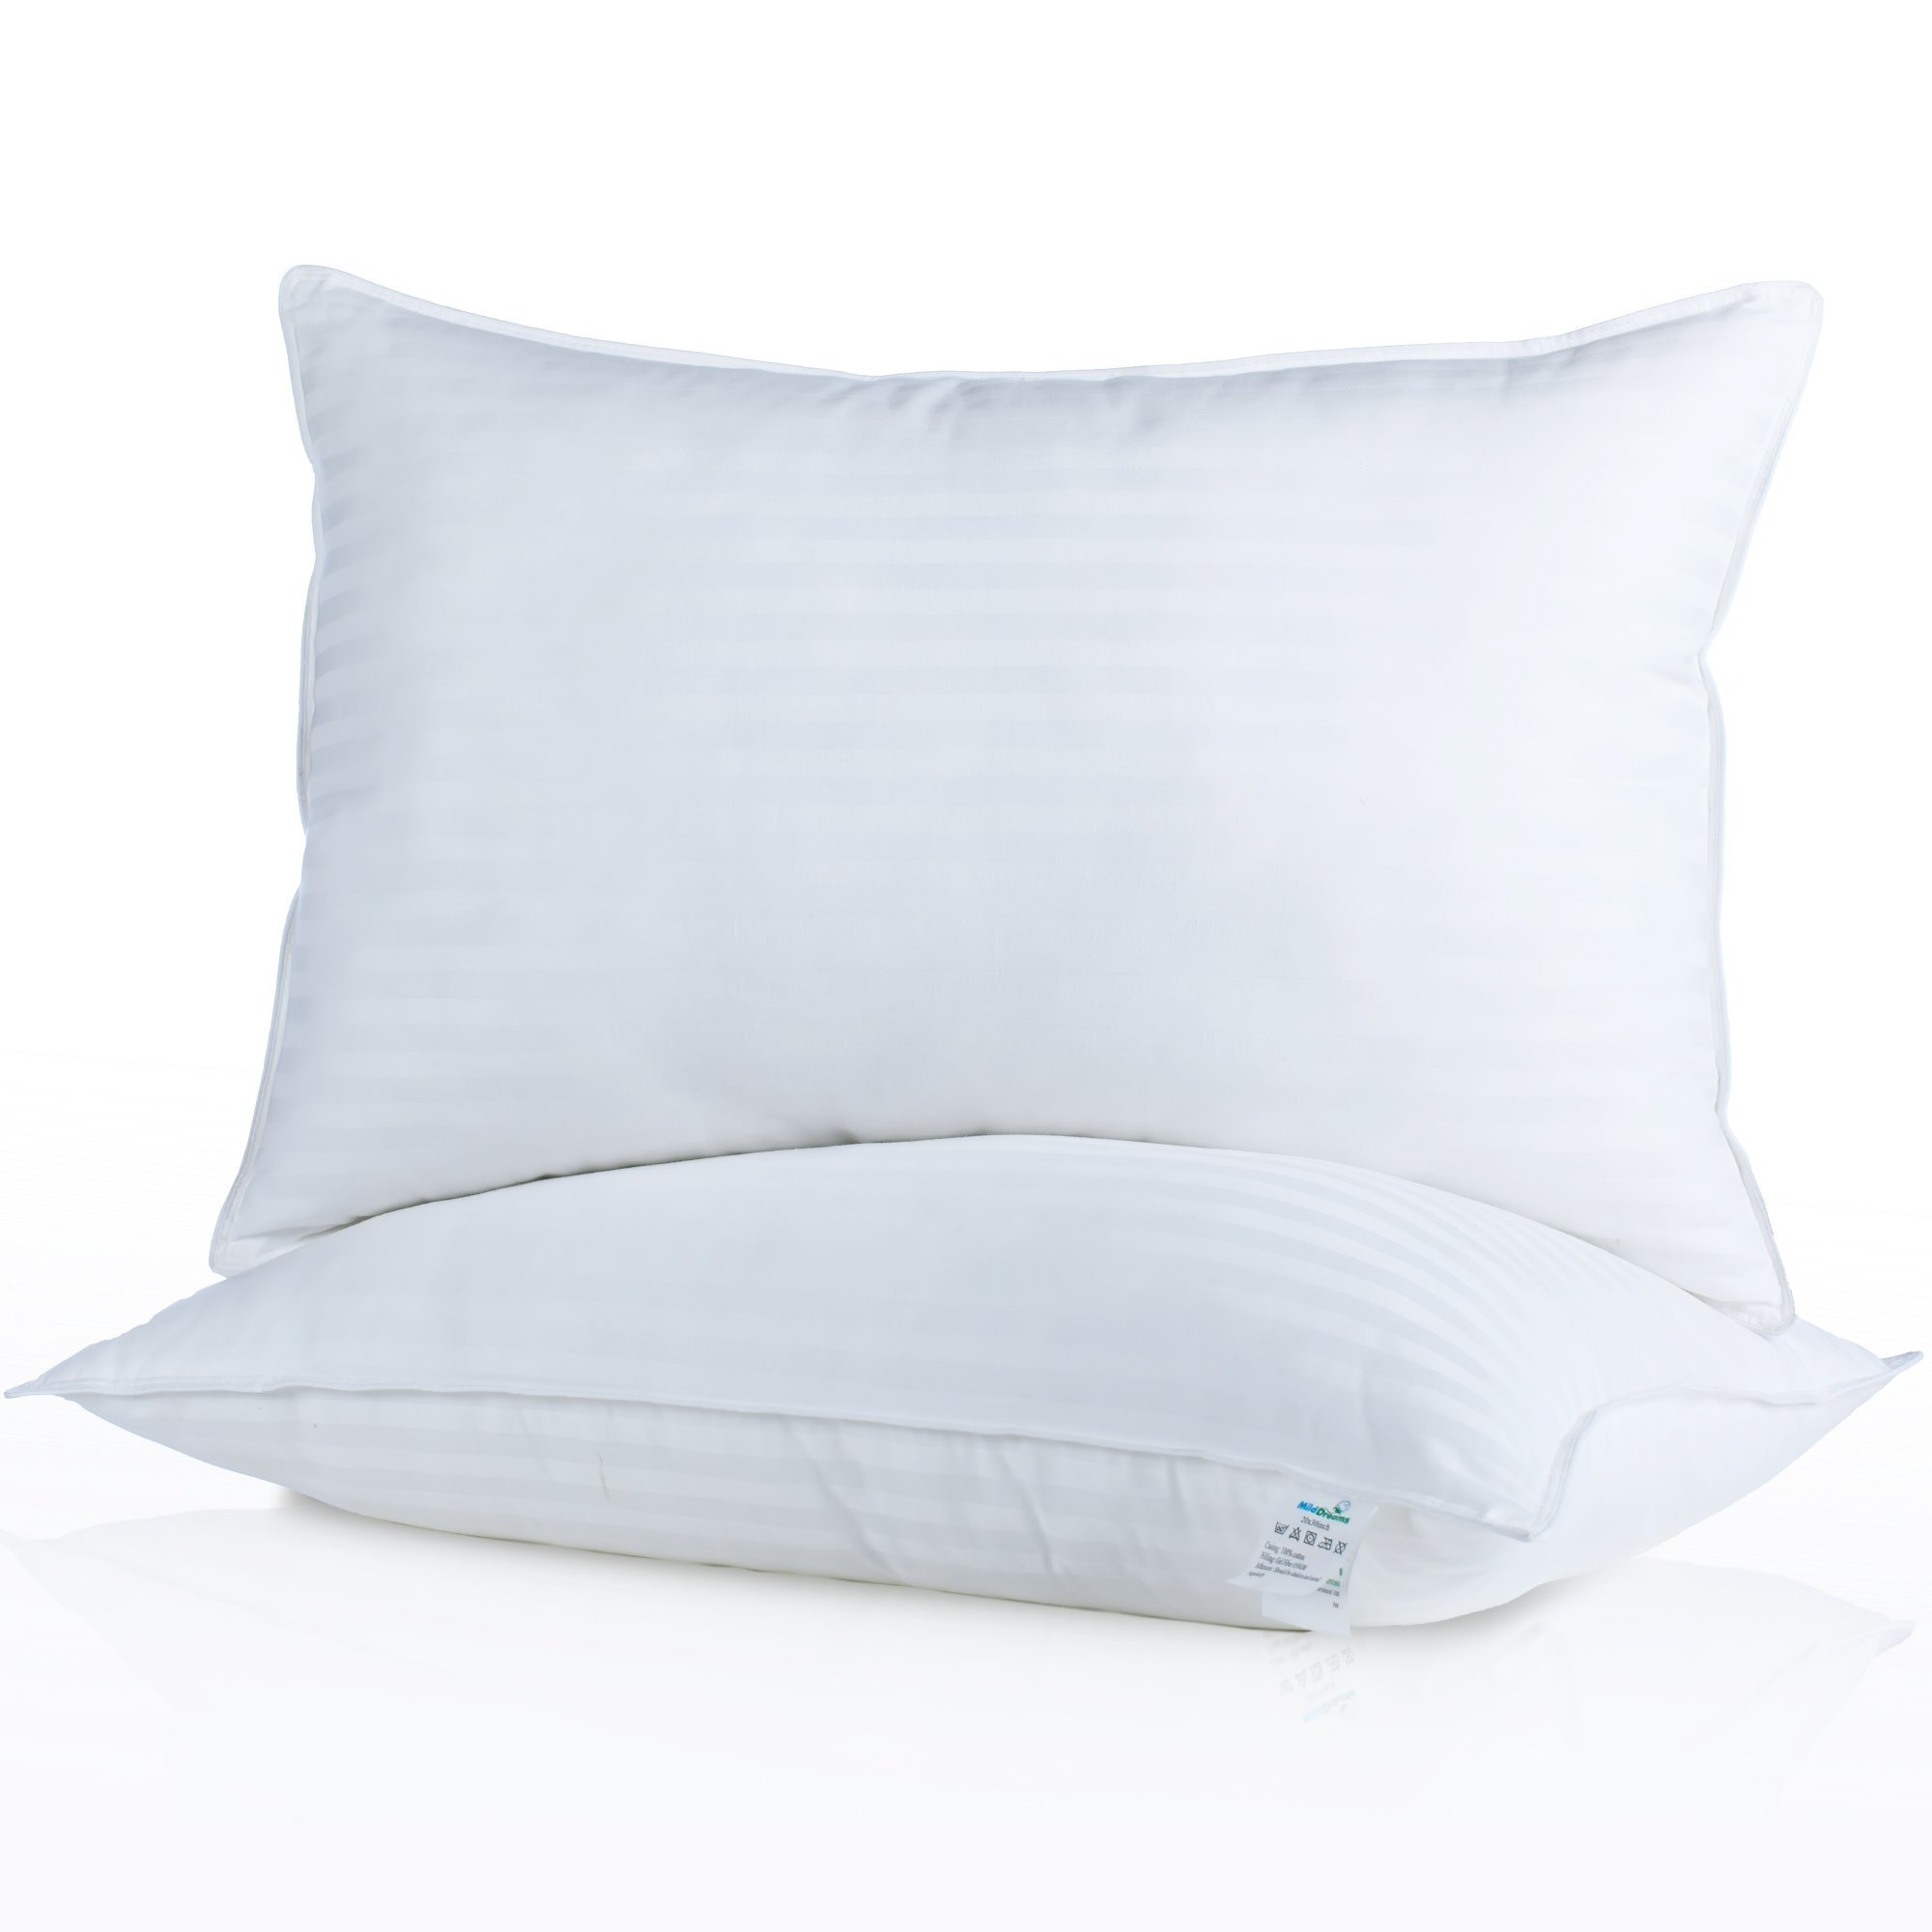 Standard Bed Pillows Cheap Standard Size Pillows Find Standard Size Pillows Deals On